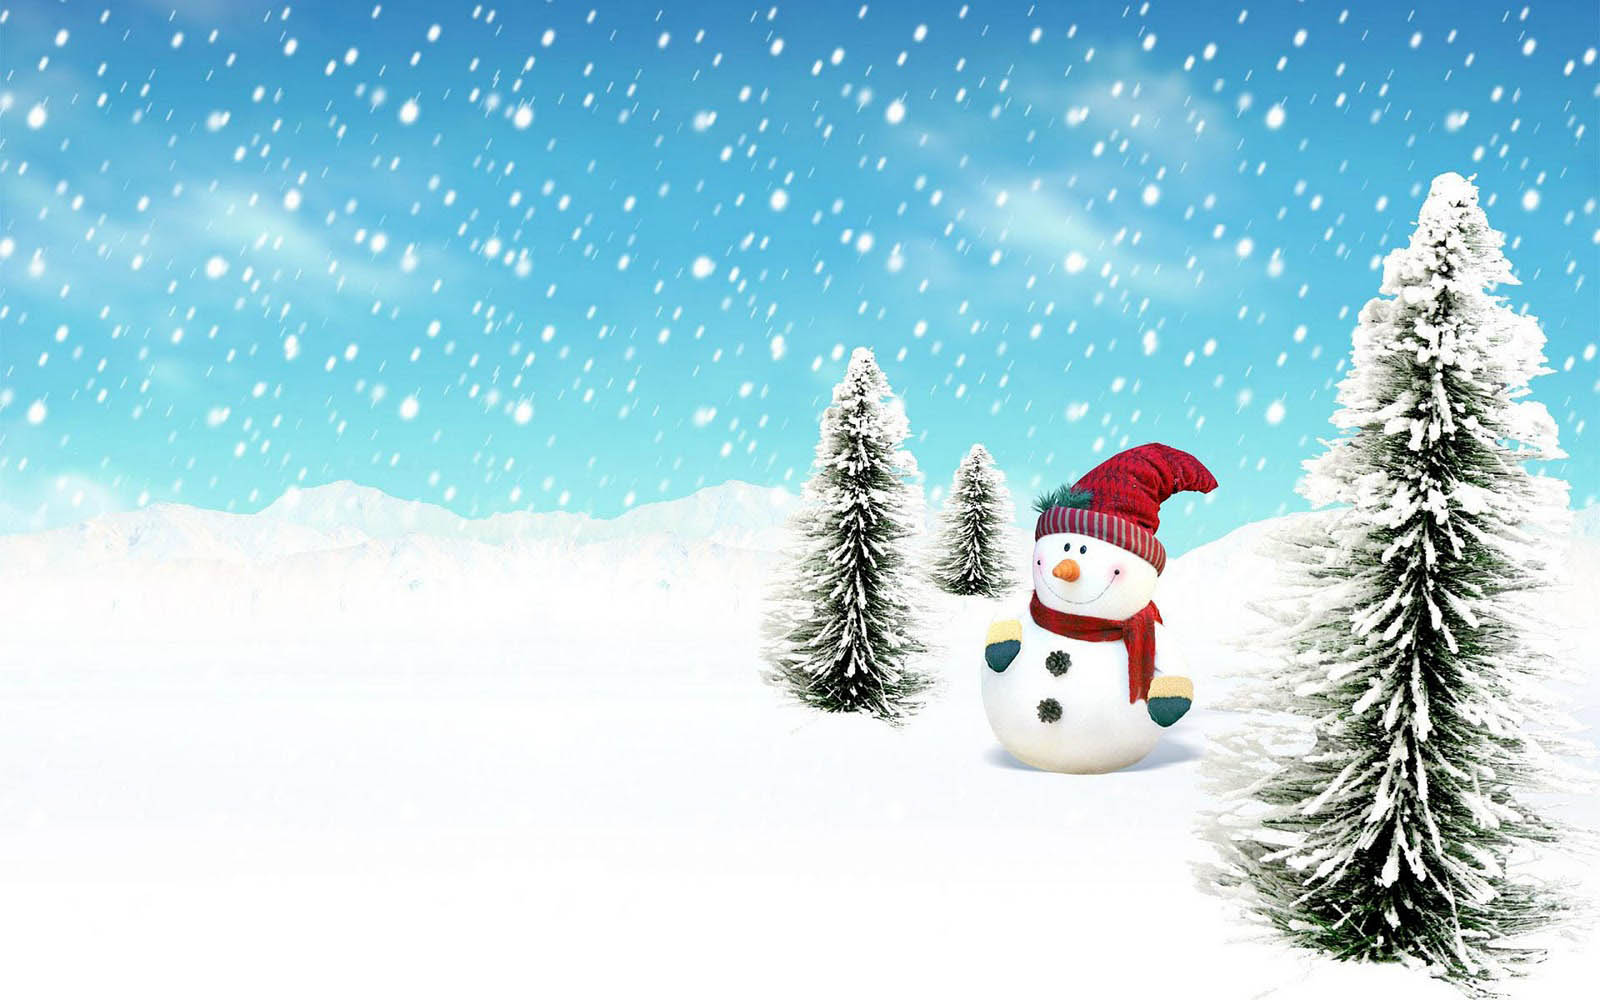 wallpapers snowman backgrounds 1600x1000